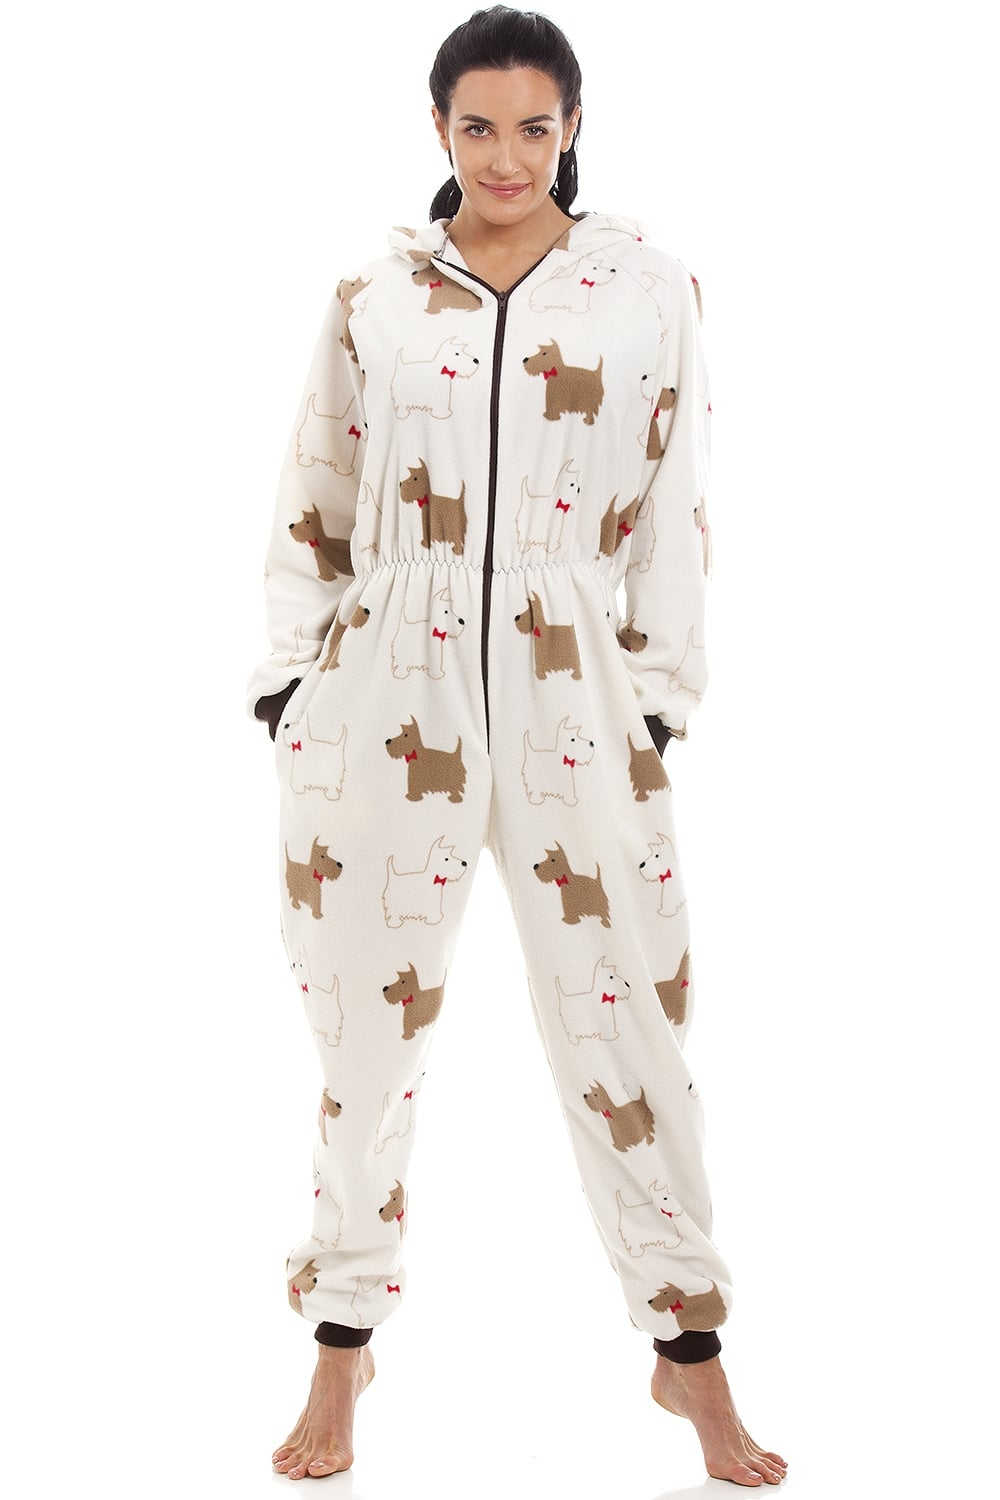 scotty dog print fleece hooded all in one onesie pyjama